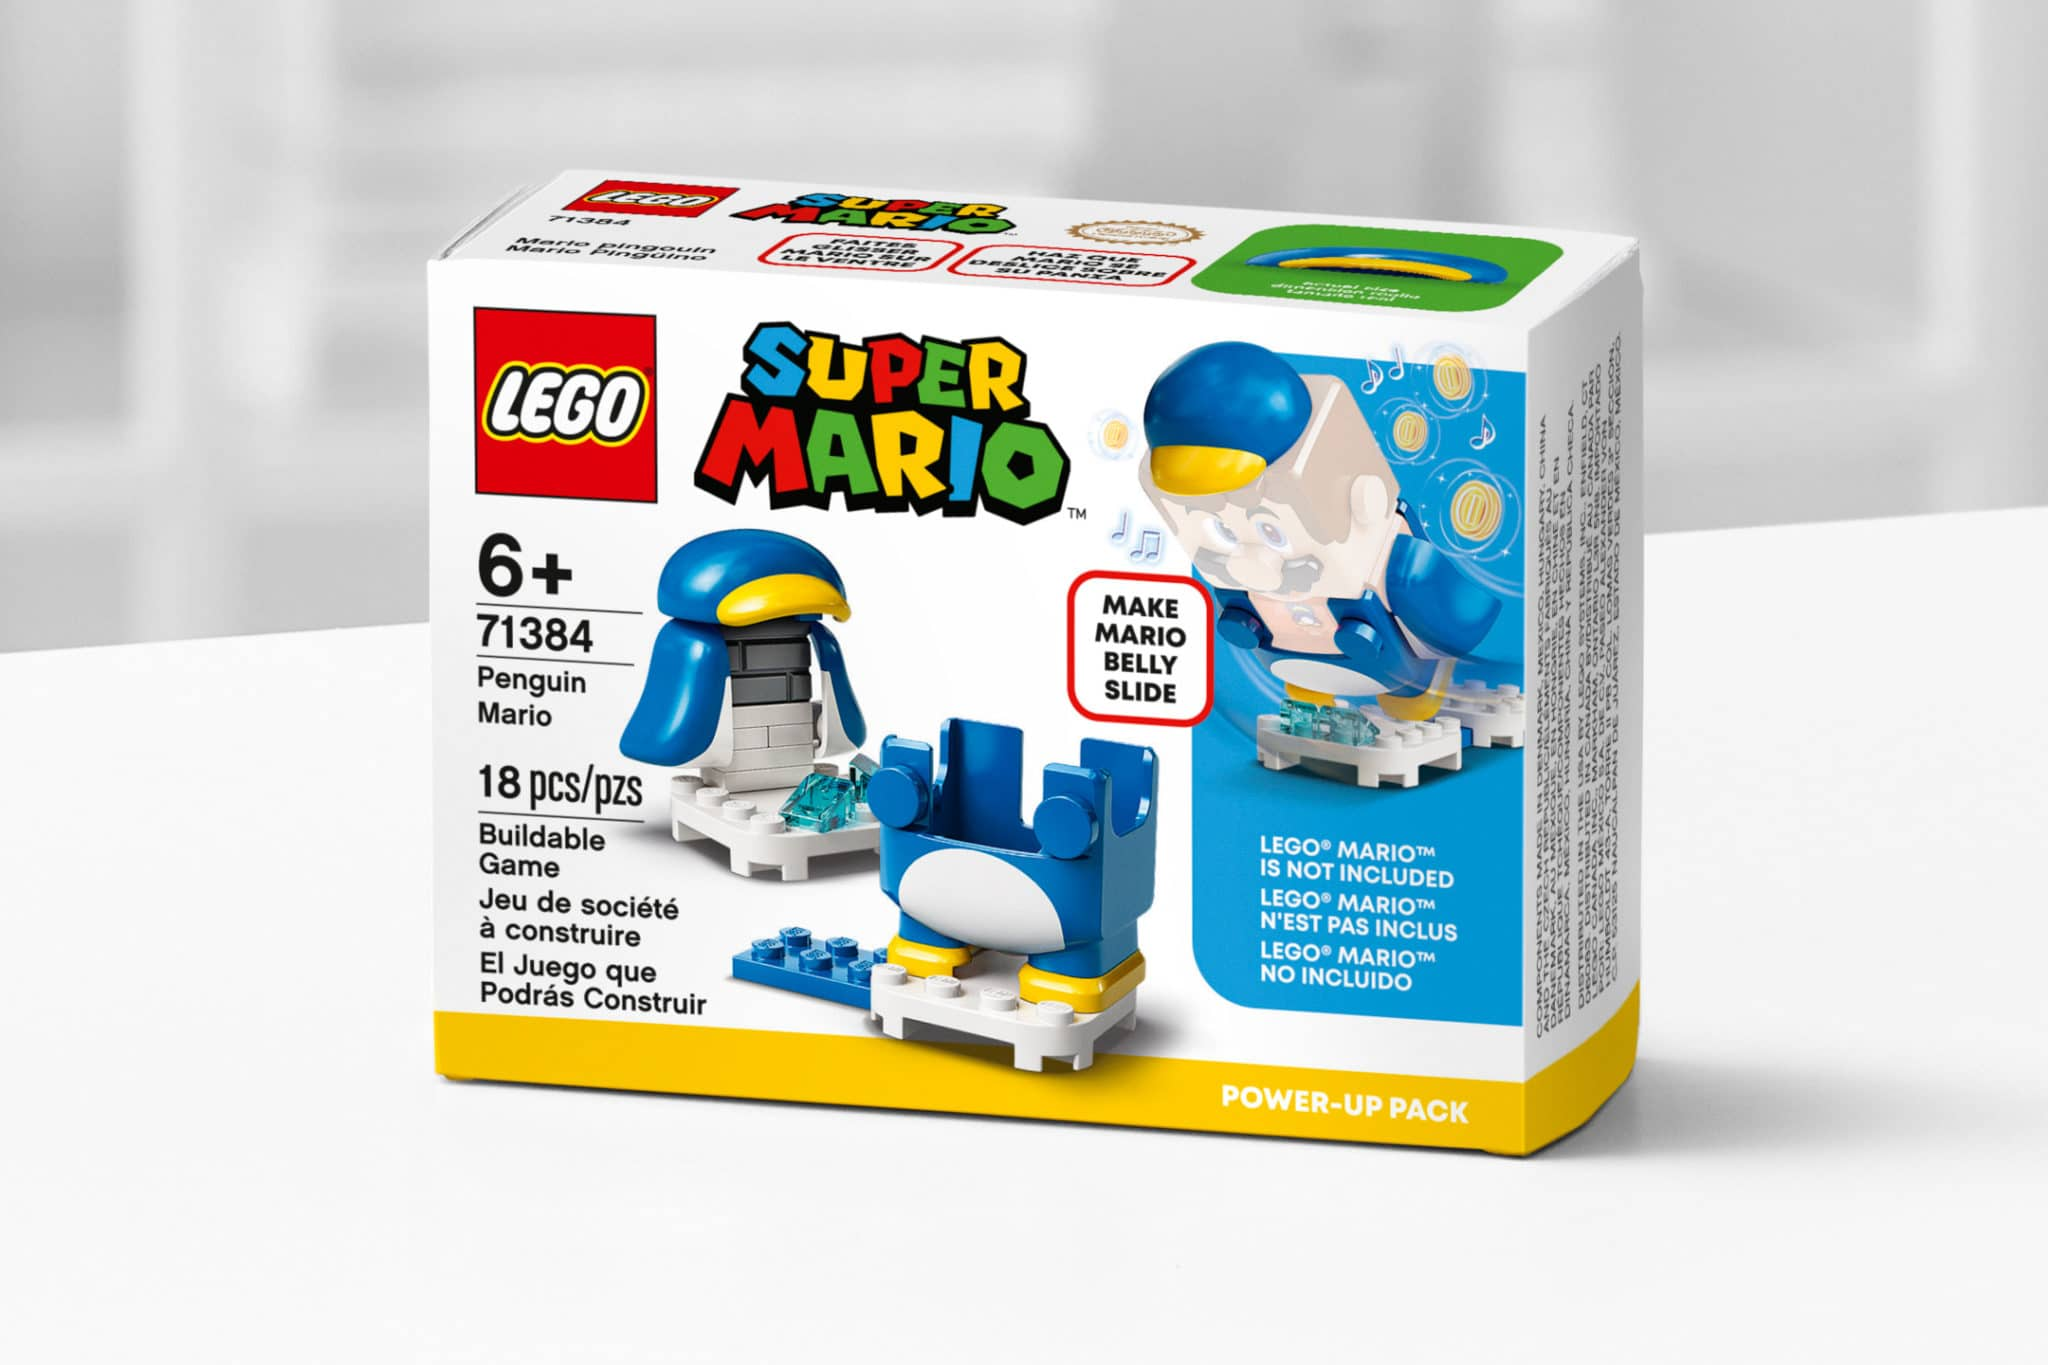 LEGO Super Mario 71384 Penguin Mario Power Up 3